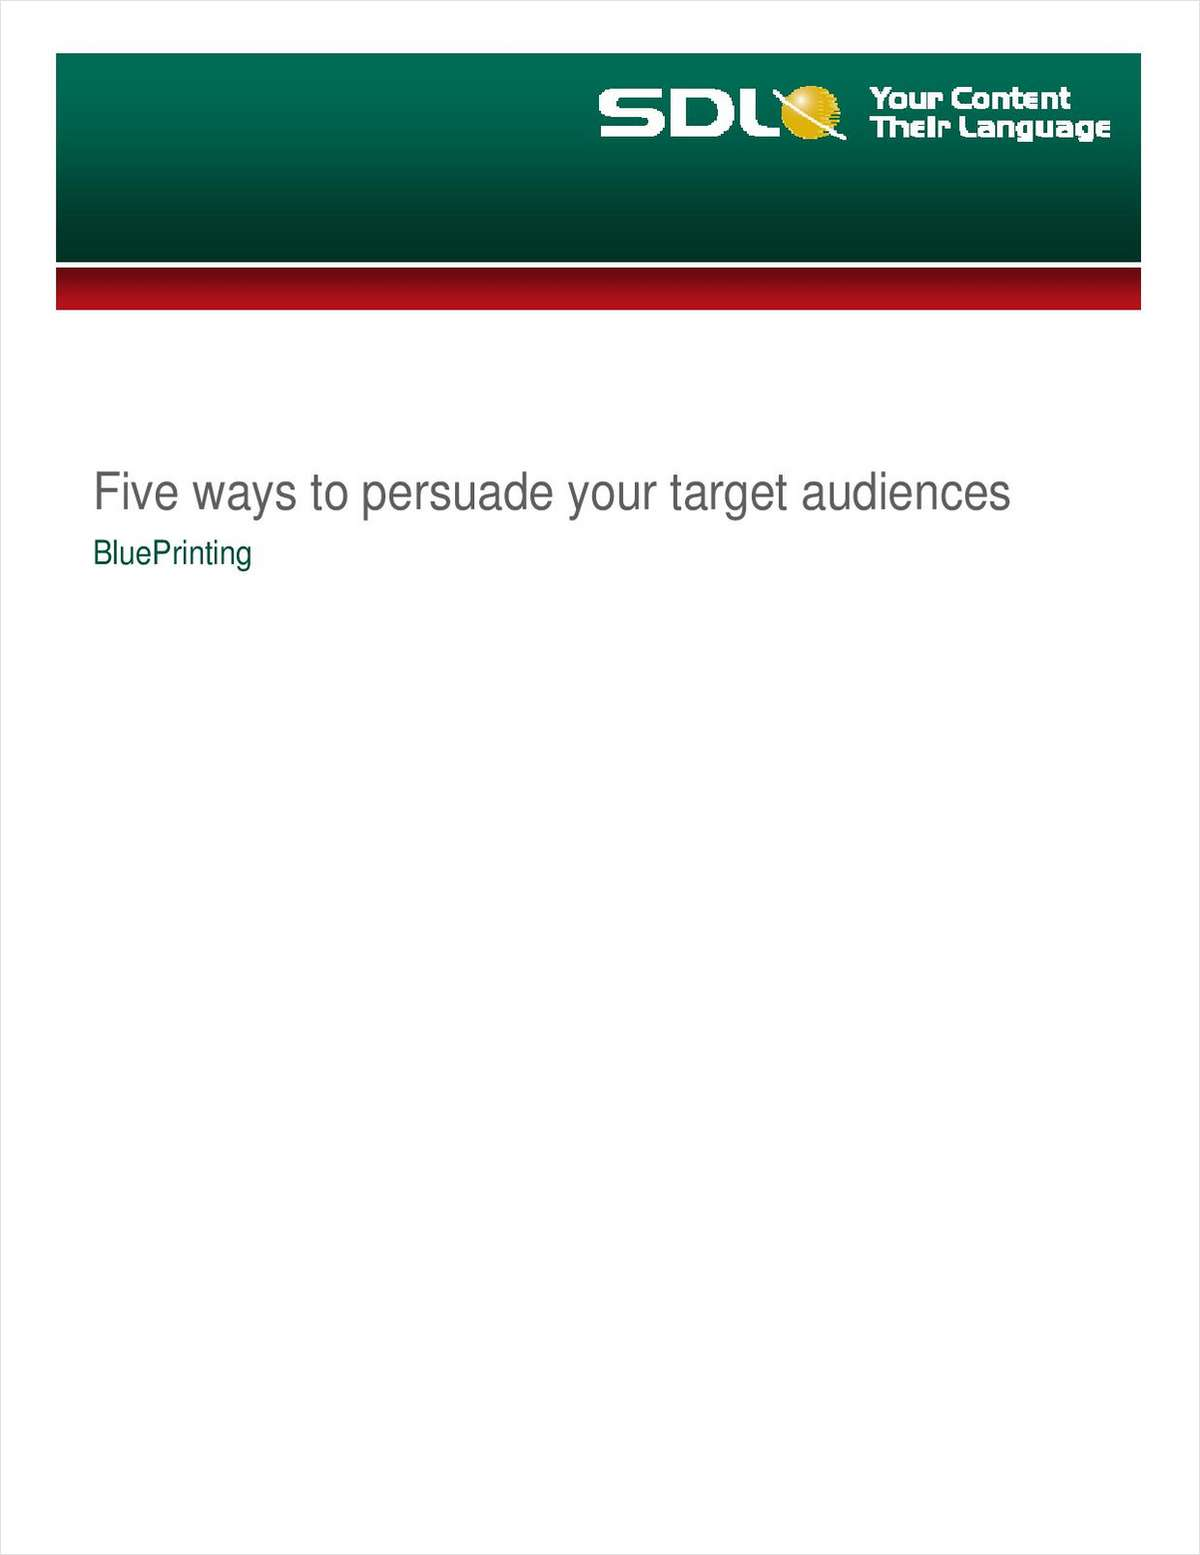 5 Ways to Persuade your Target Audiences